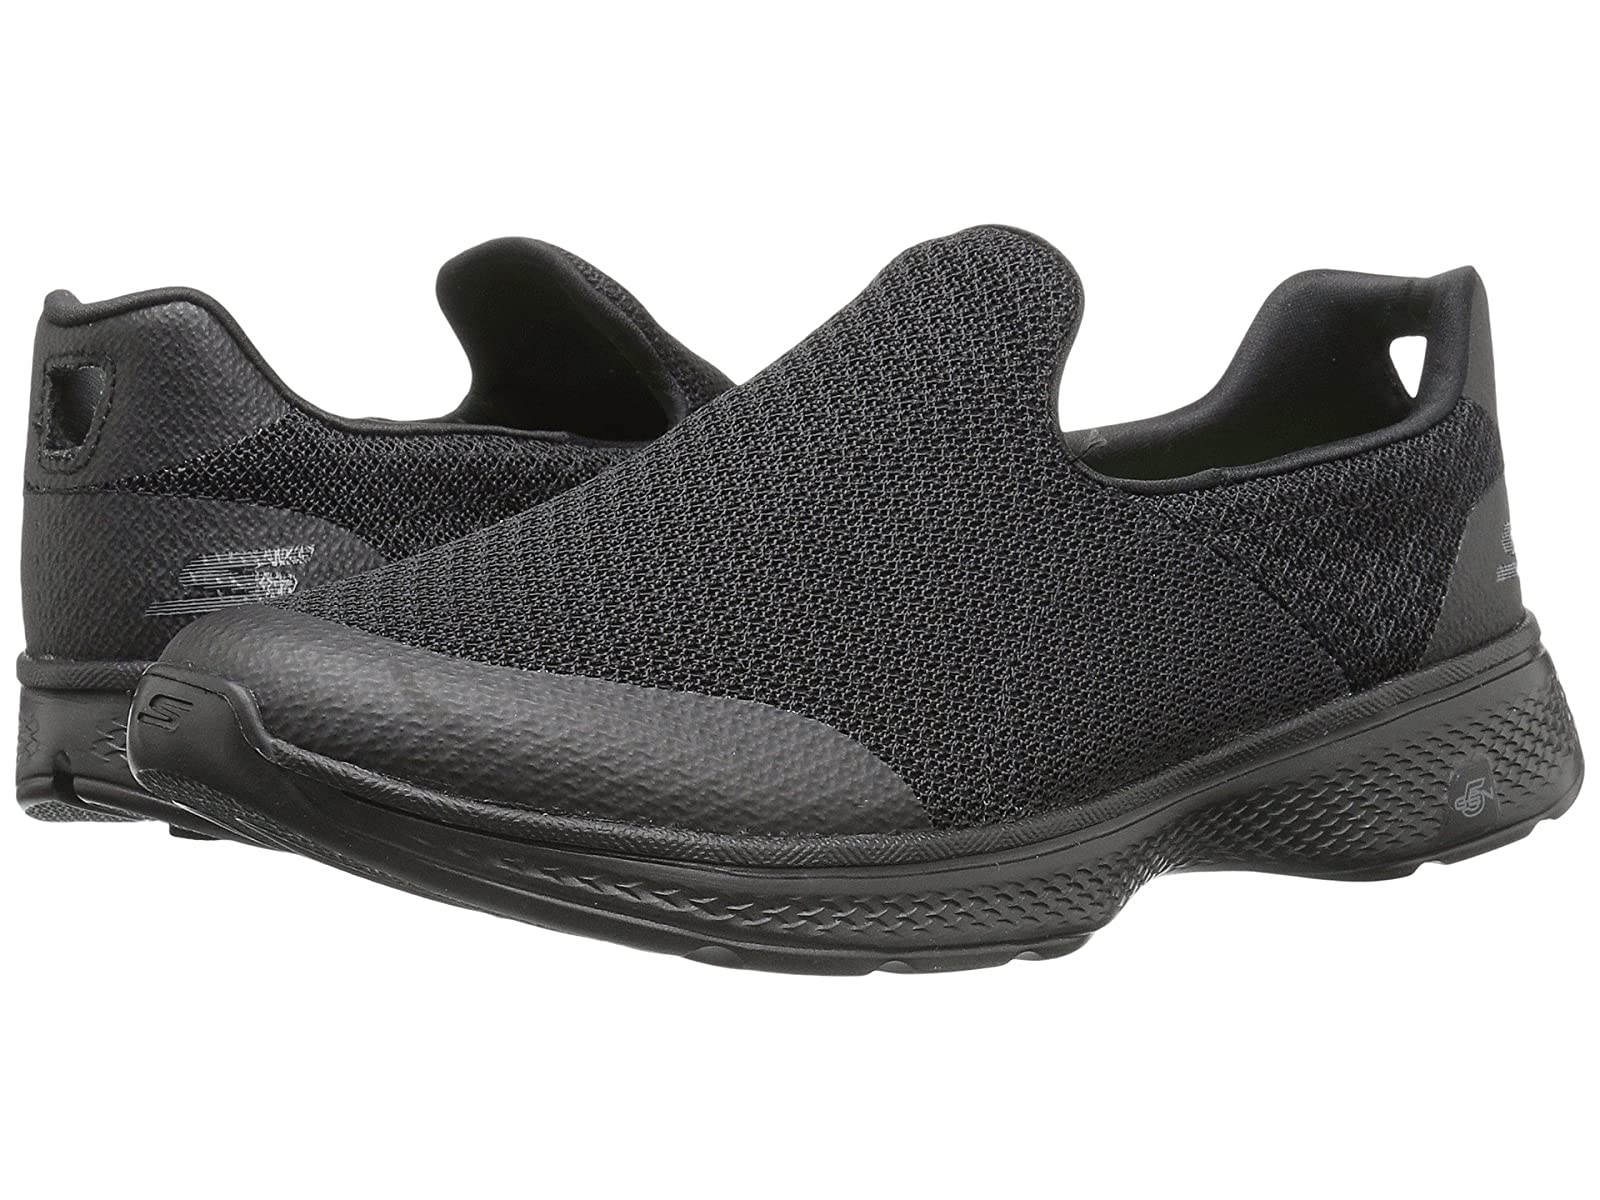 SKECHERS Performance Go Walk 4 - ExpertAtmospheric grades have affordable shoes